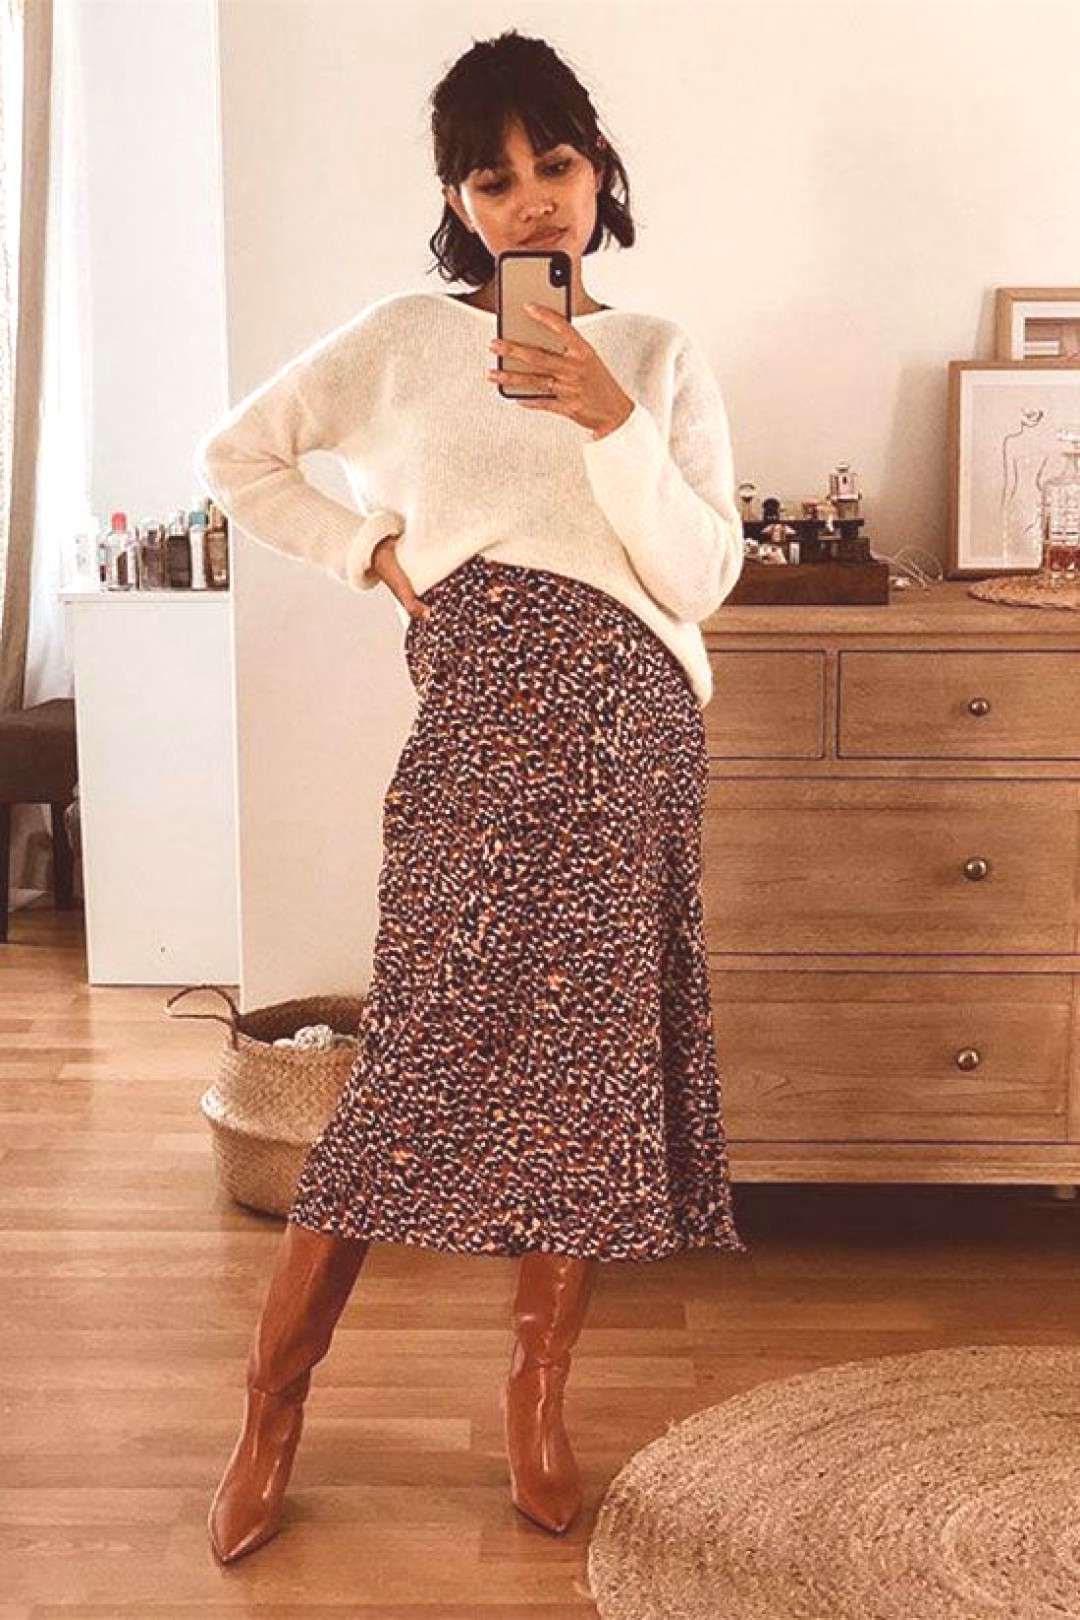 5 Reasons To Love The Midi Skirt And Boots Combo Fashion Blogger Sherlock Diary wearing a white